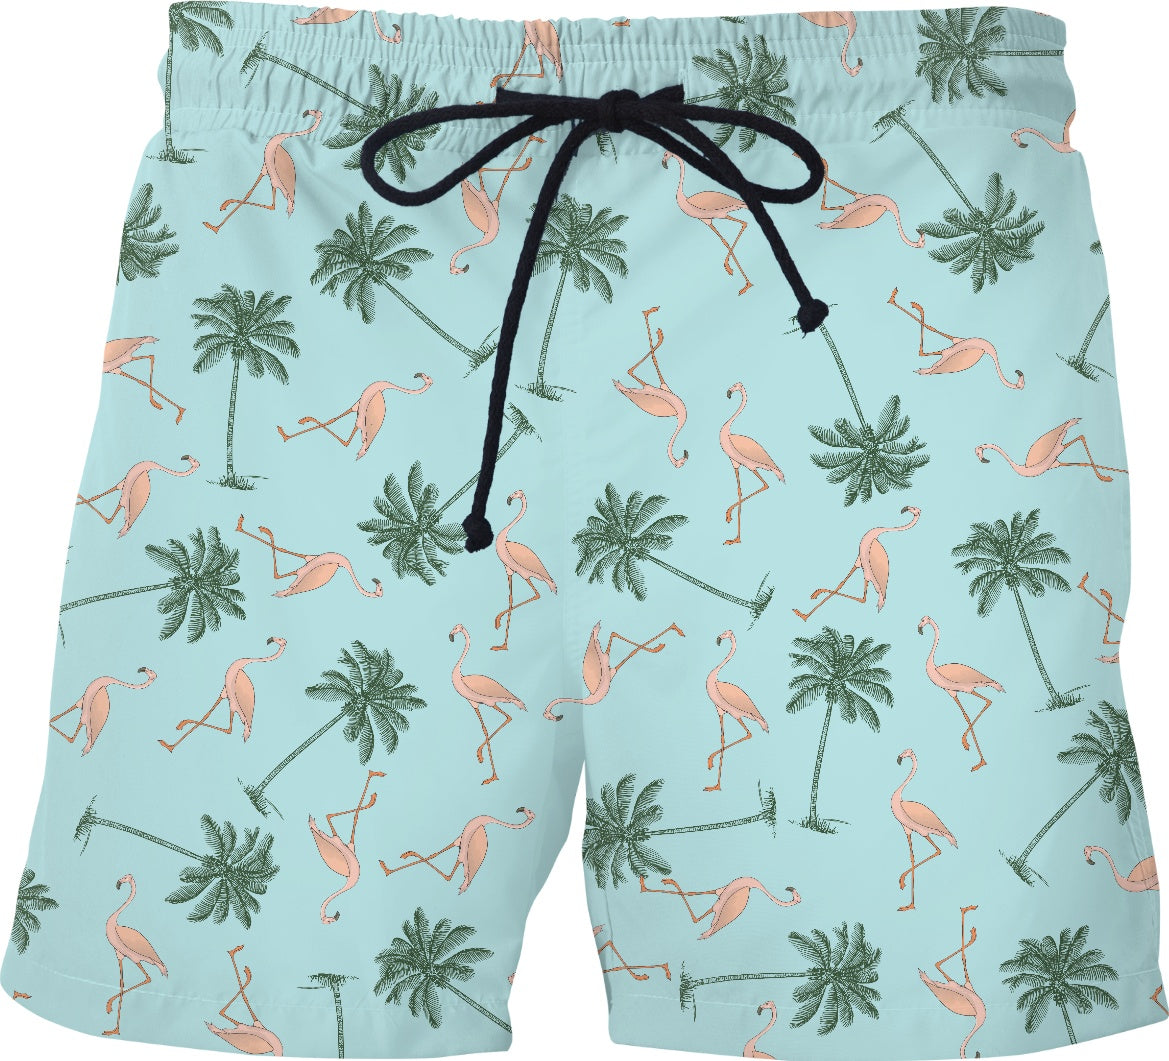 Flamingos and Palm Trees Swim Shorts - Adult Swim Time